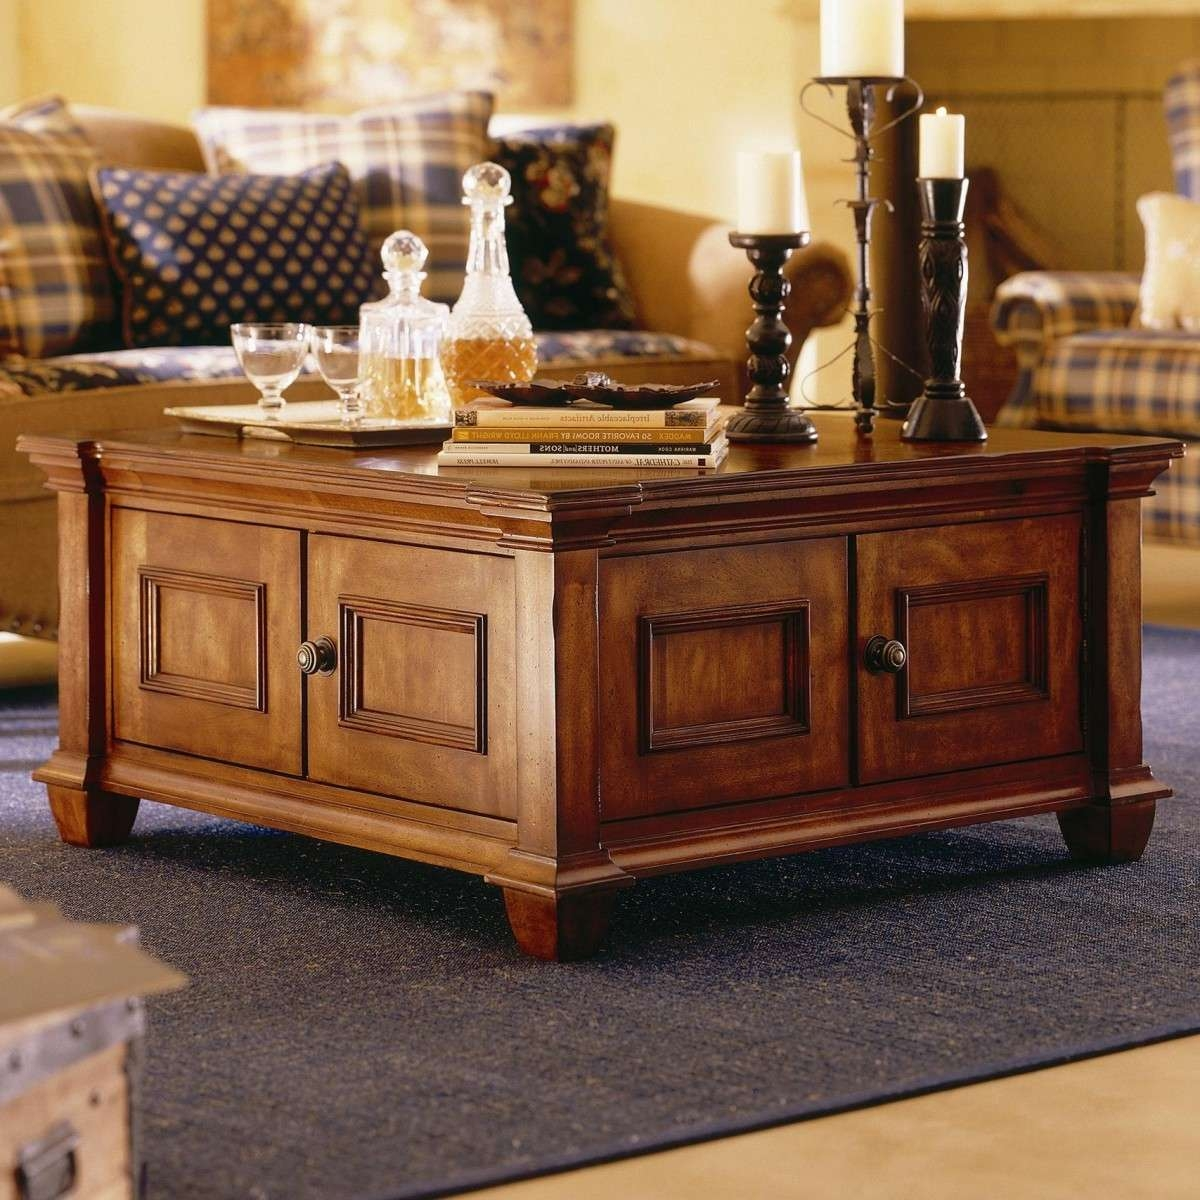 Coffee Tables : Square Coffee Table With Storage Cubes Drawers Pertaining To Most Current Square Coffee Table Storages (View 2 of 20)